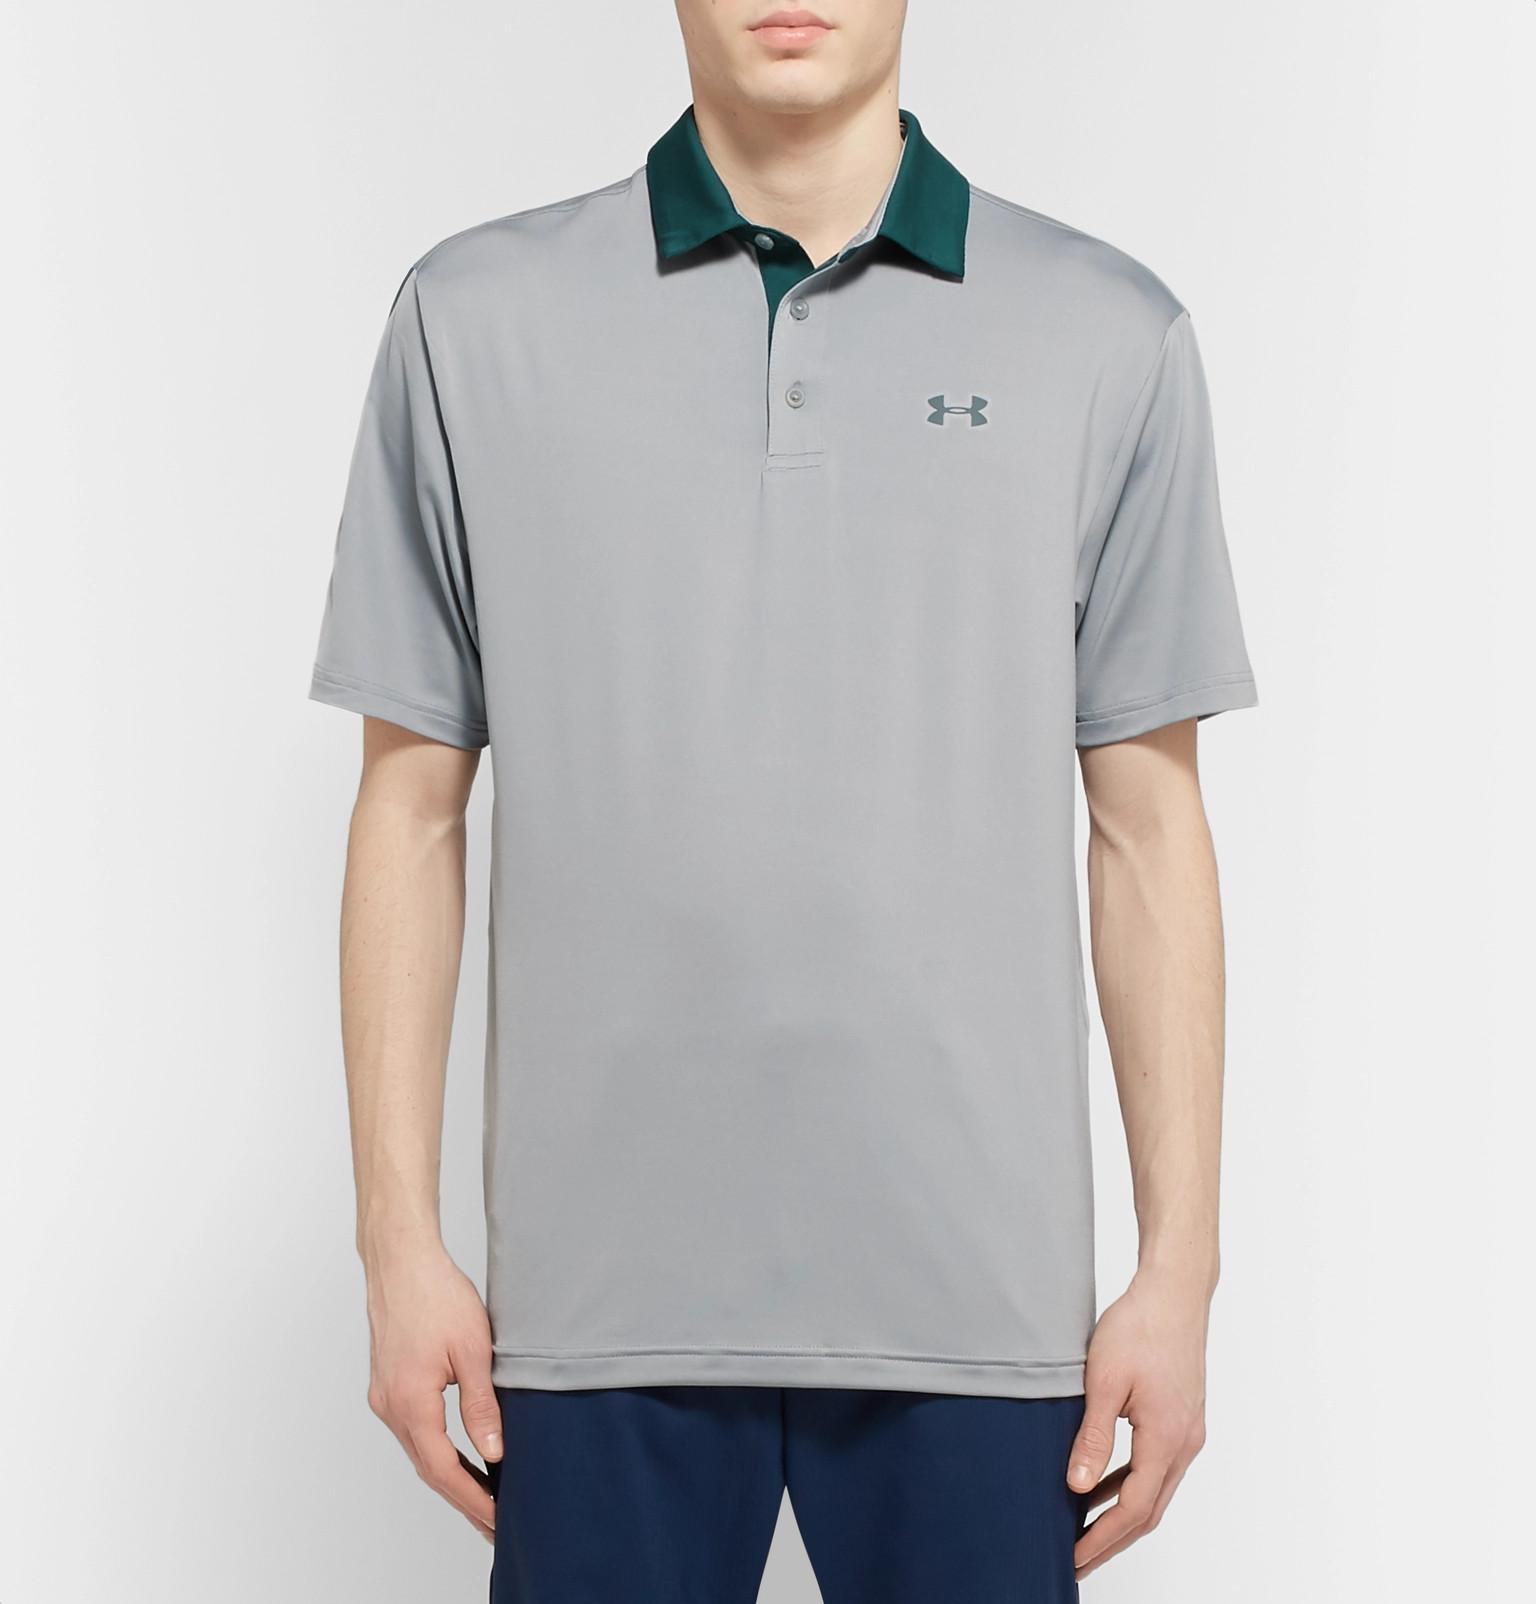 52af86615bdc62 Under Armour - Gray Playoff 2.0 Heatgear Golf Polo Shirt for Men - Lyst.  View fullscreen